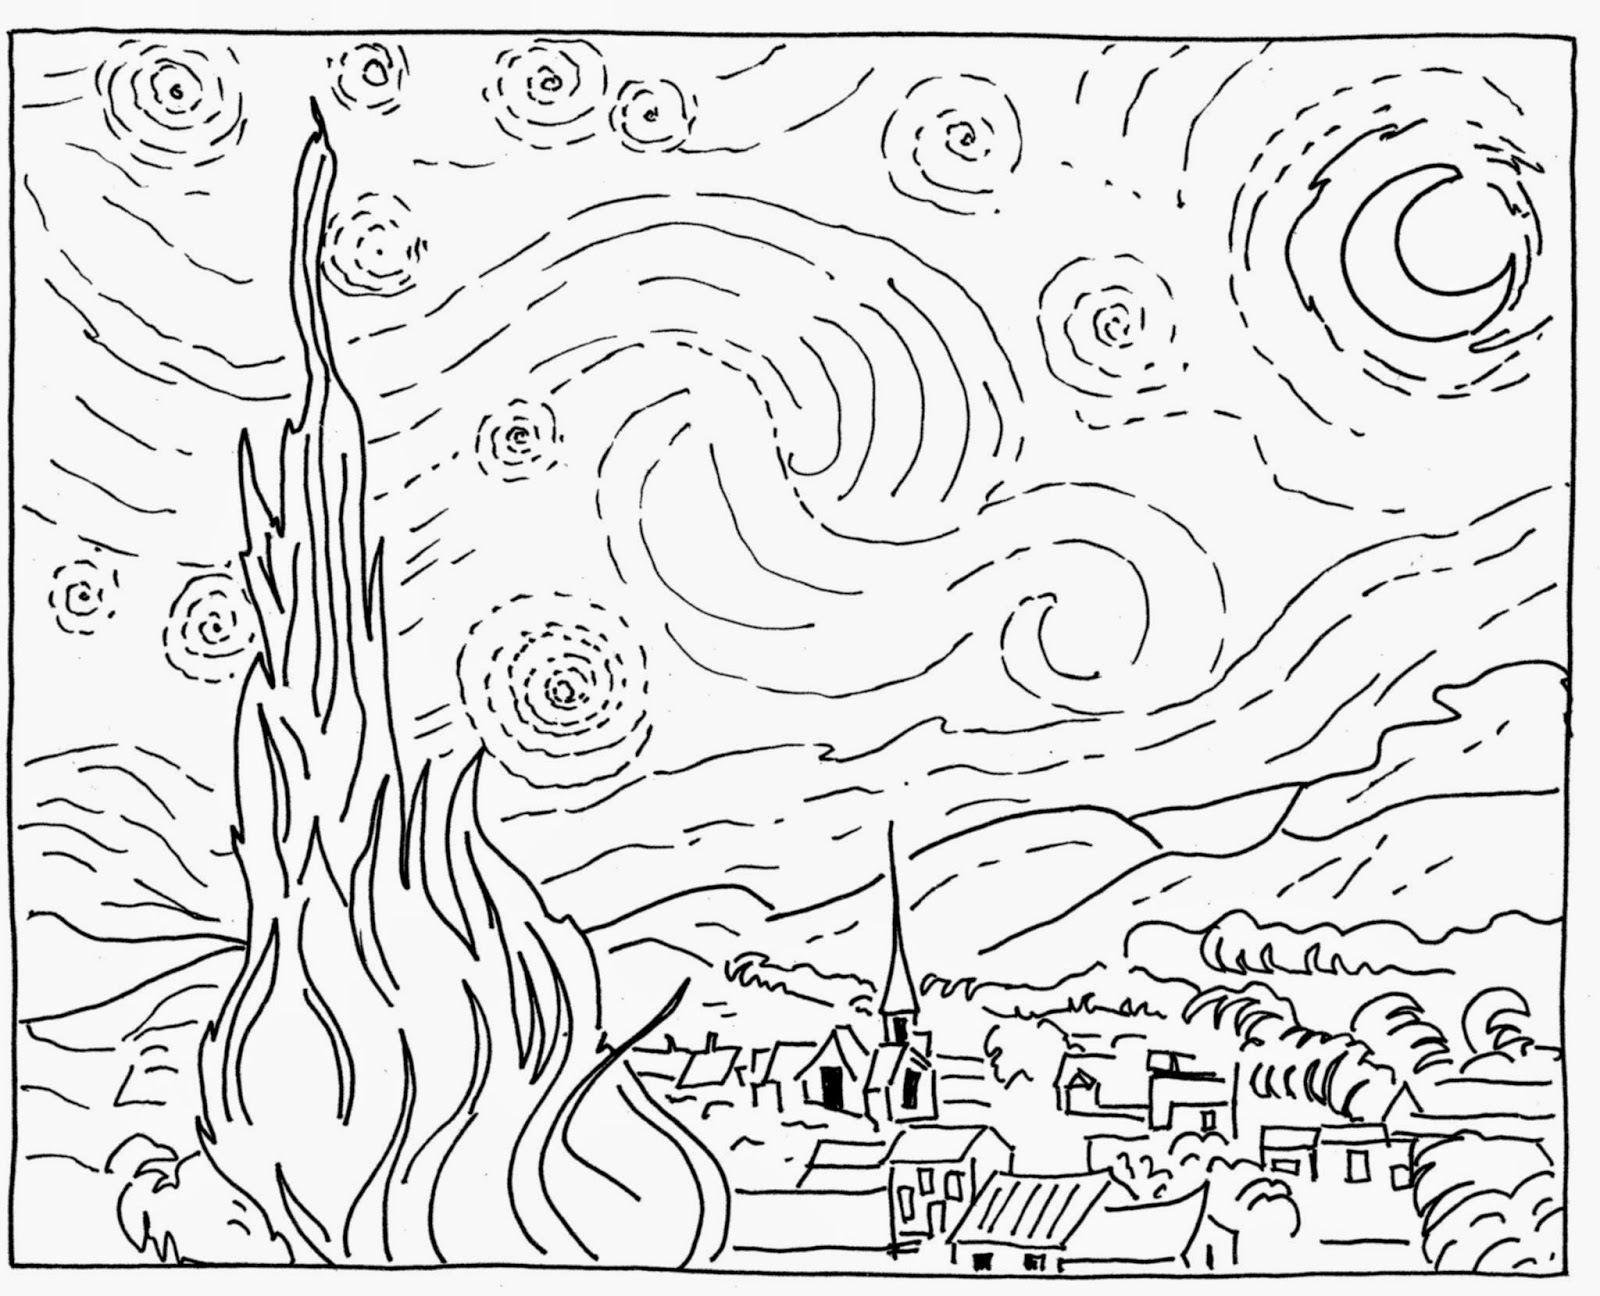 Vincent Van Gogh Starry Night Coloring Sketch Coloring Page